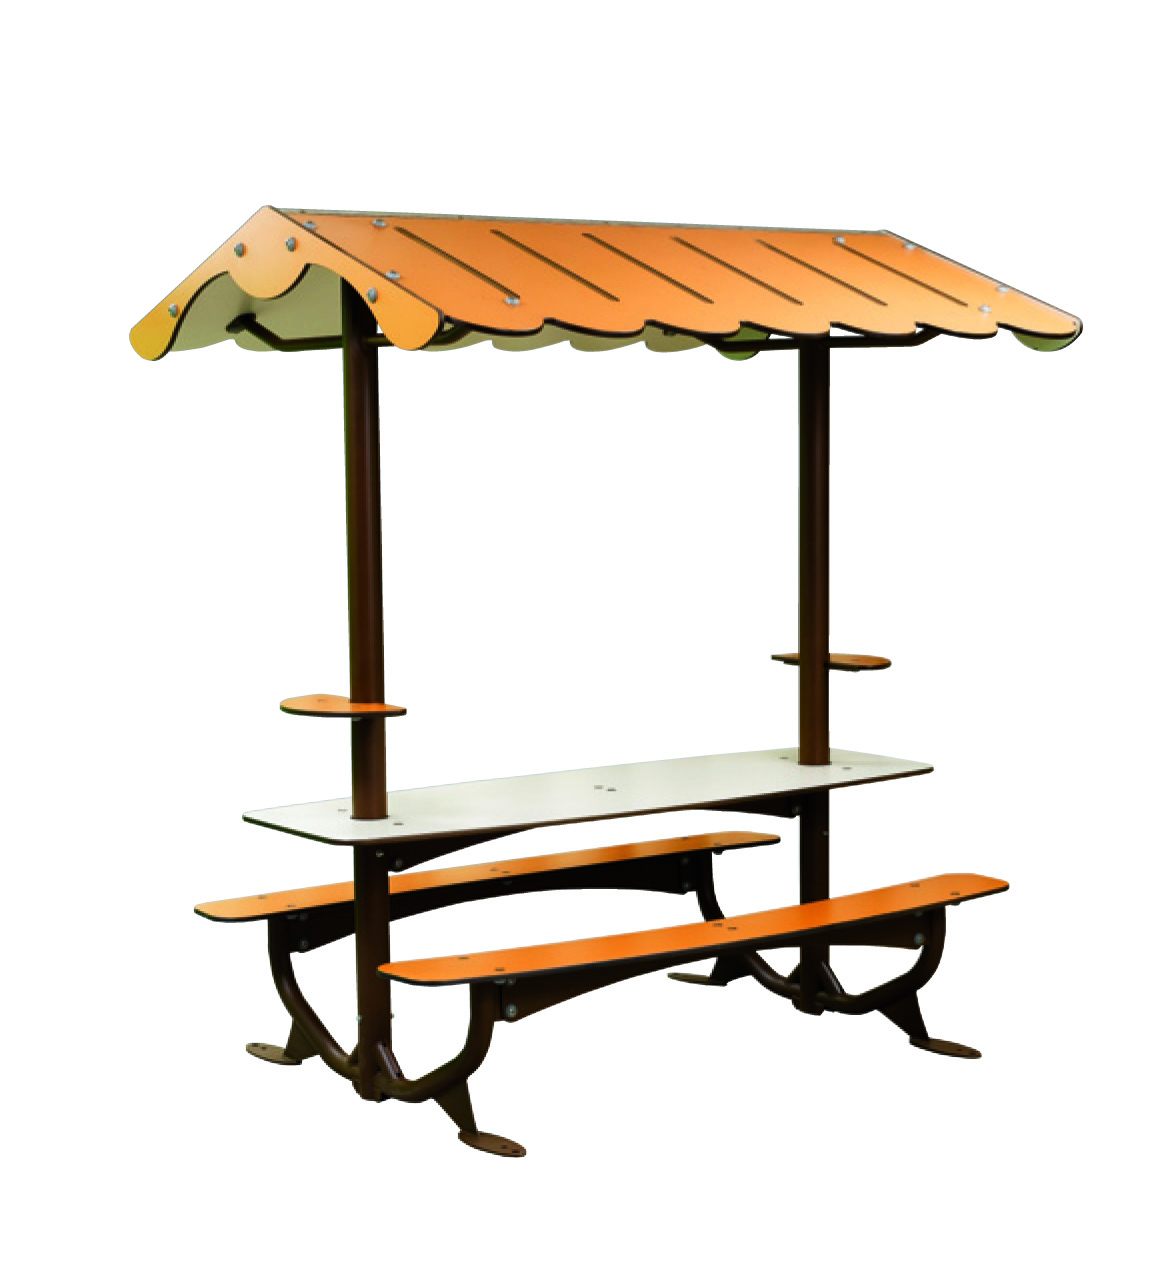 Covered Picnic Tables : Benches picnic table covered kit husson international